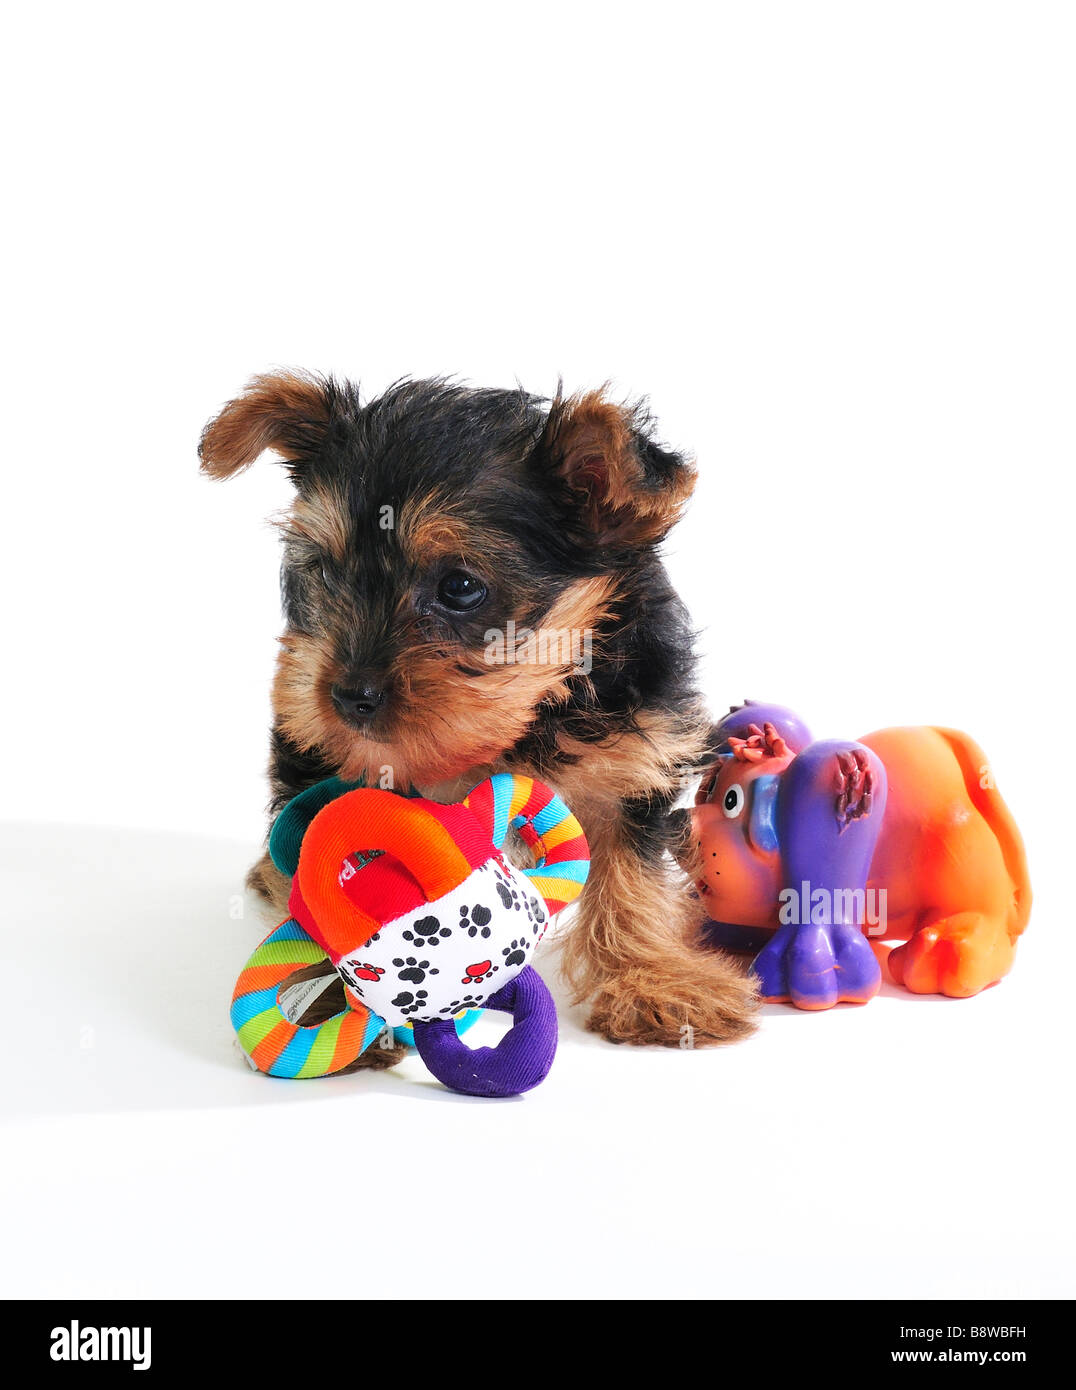 A 7 week old Yorkshire Terrier puppy, Canis lupus familiaris, with two squeaky toys, isolated on white. - Stock Image